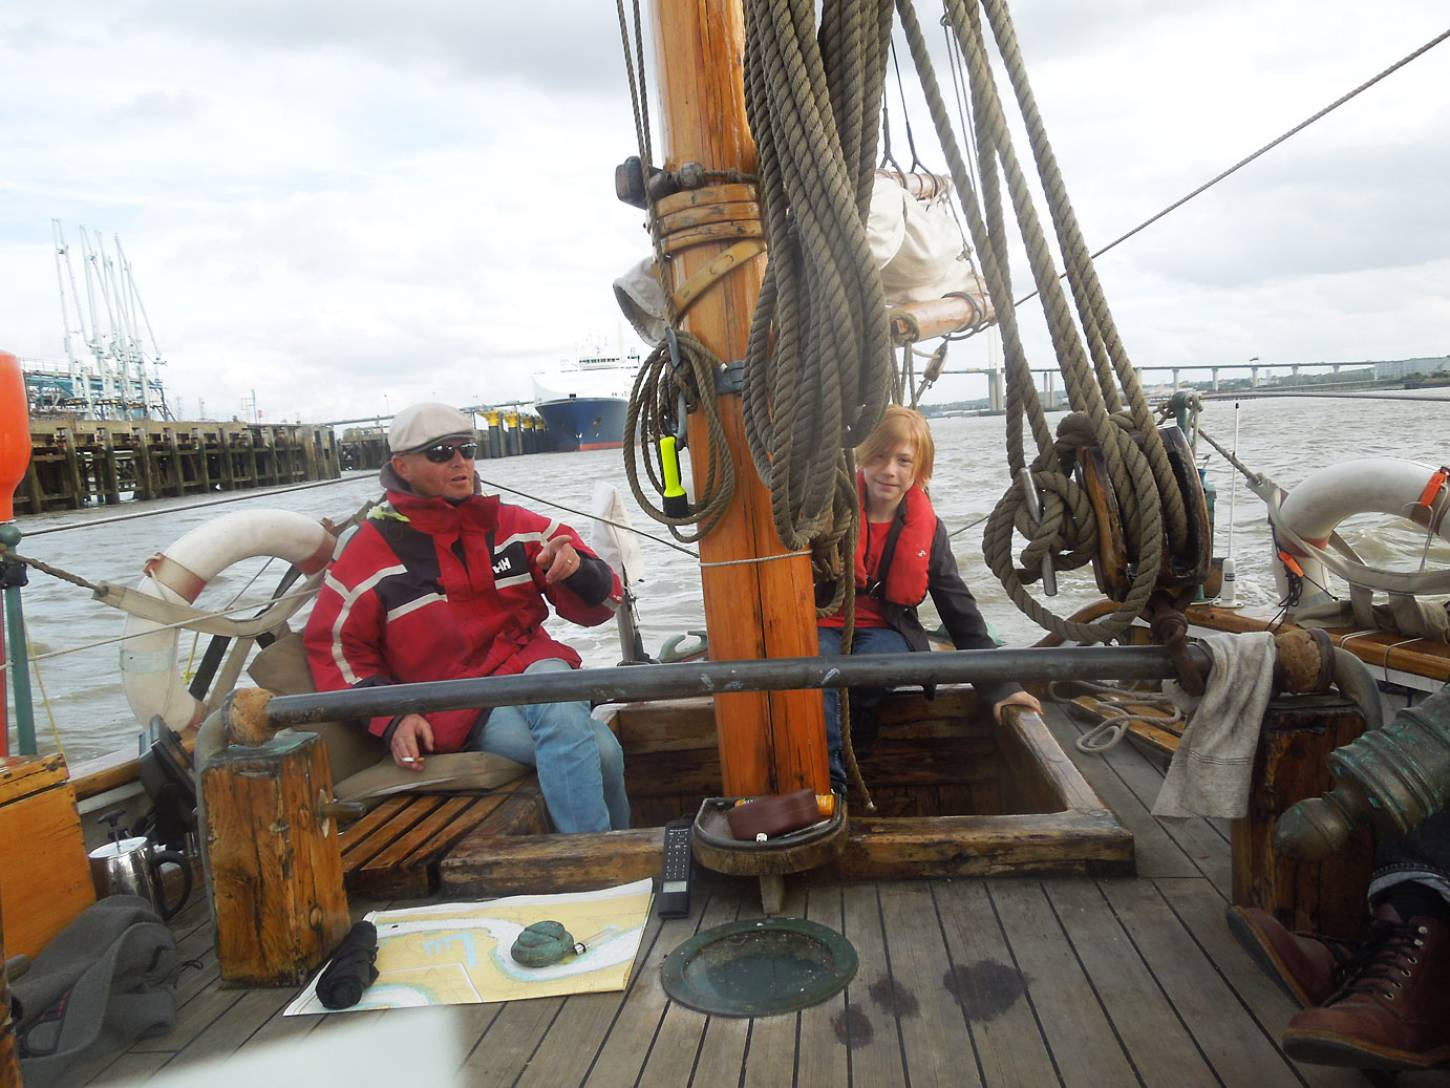 on Gravesend to Port of London leg of <a href='http://https://www.facebook.com/theseedjourney/' target='_blank'>Seed Journey</a> adventure aboard the <a href='http://www.classicboat.co.uk/articles/christiana-from-shipwreck-to-sailing/' target='_blank'>Christiana RS10</a> 1895 Norwegian Colin Archer rescue boat - on course for the Port of London - 4:52pm&nbsp;29<sup>th</sup>&nbsp;Sep.&nbsp;'16